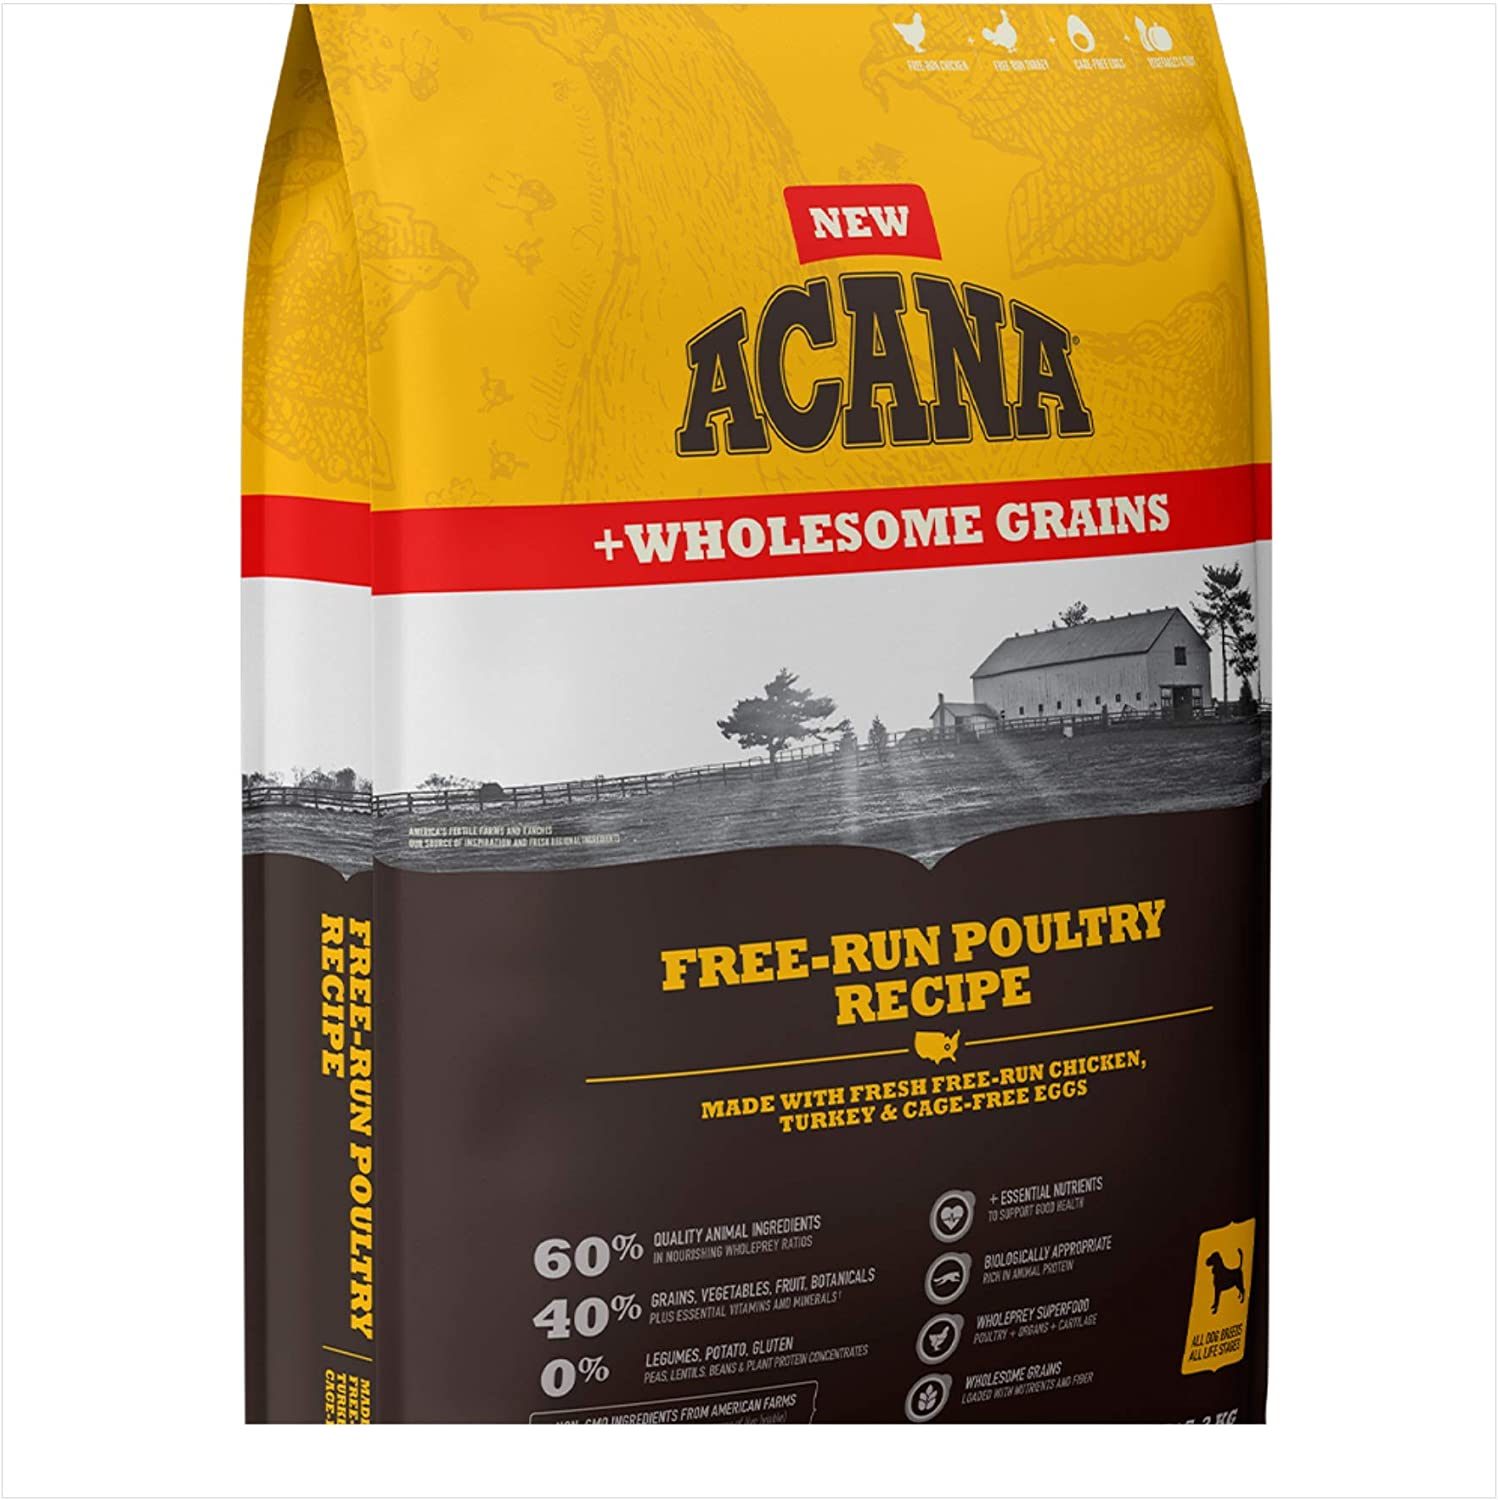 ACANA Free Run Poultry Wholesome Grains Dry Dog Food Formula 11.5 Pound Bag (New)